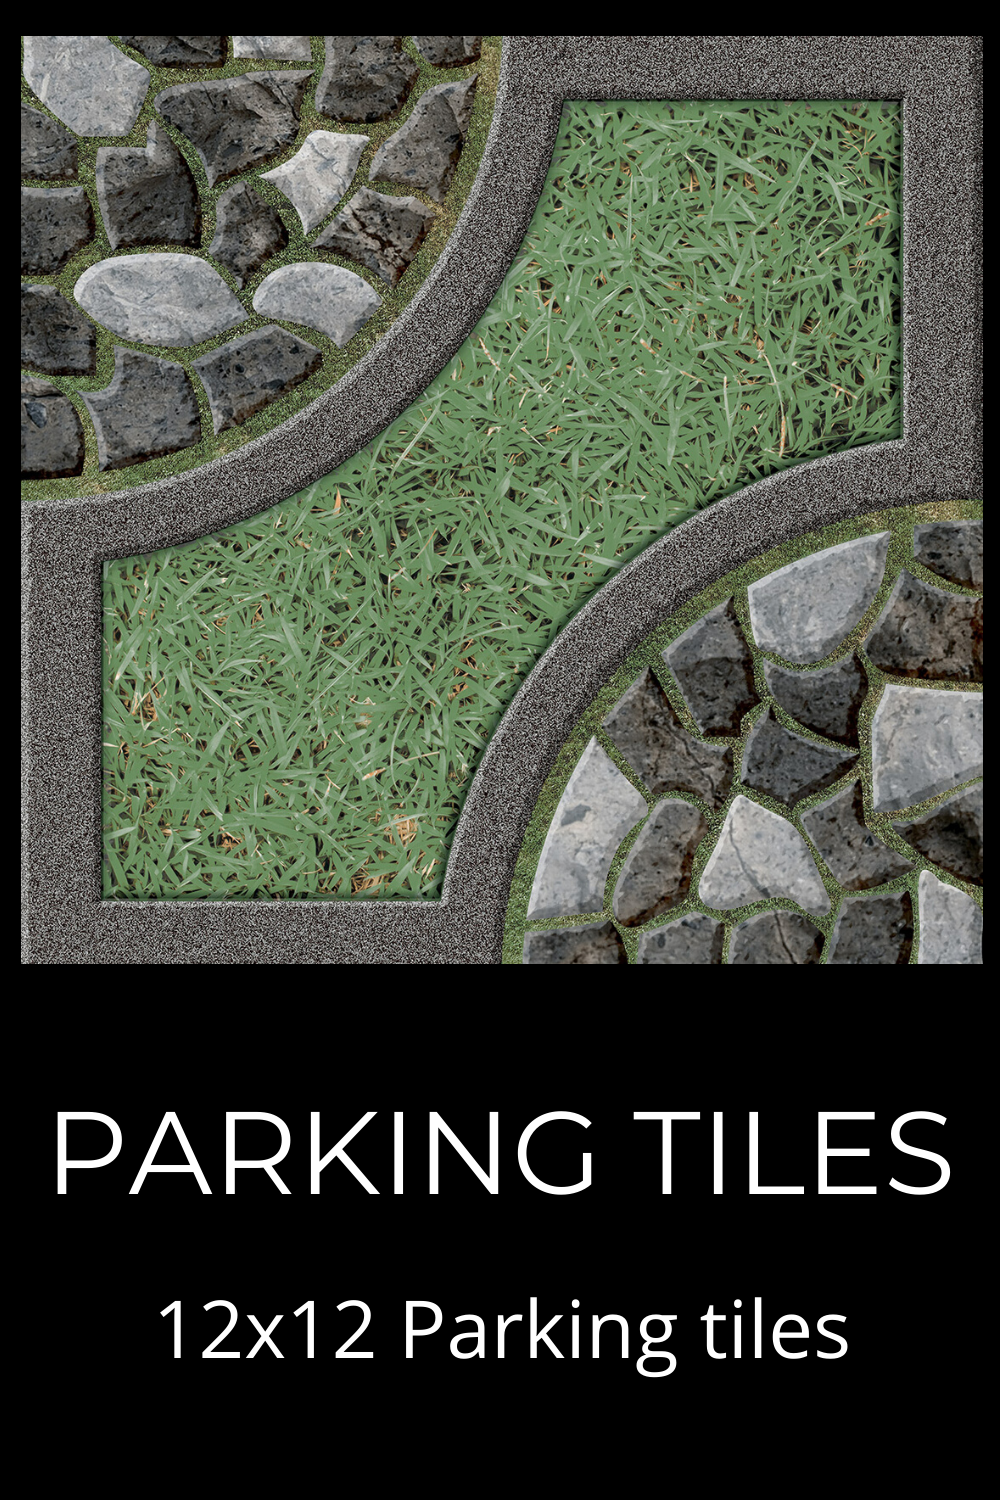 12x12 Digital Parking Tiles In 2020 Garden Tiles Vitrified Tiles Ceramic Wall Tiles